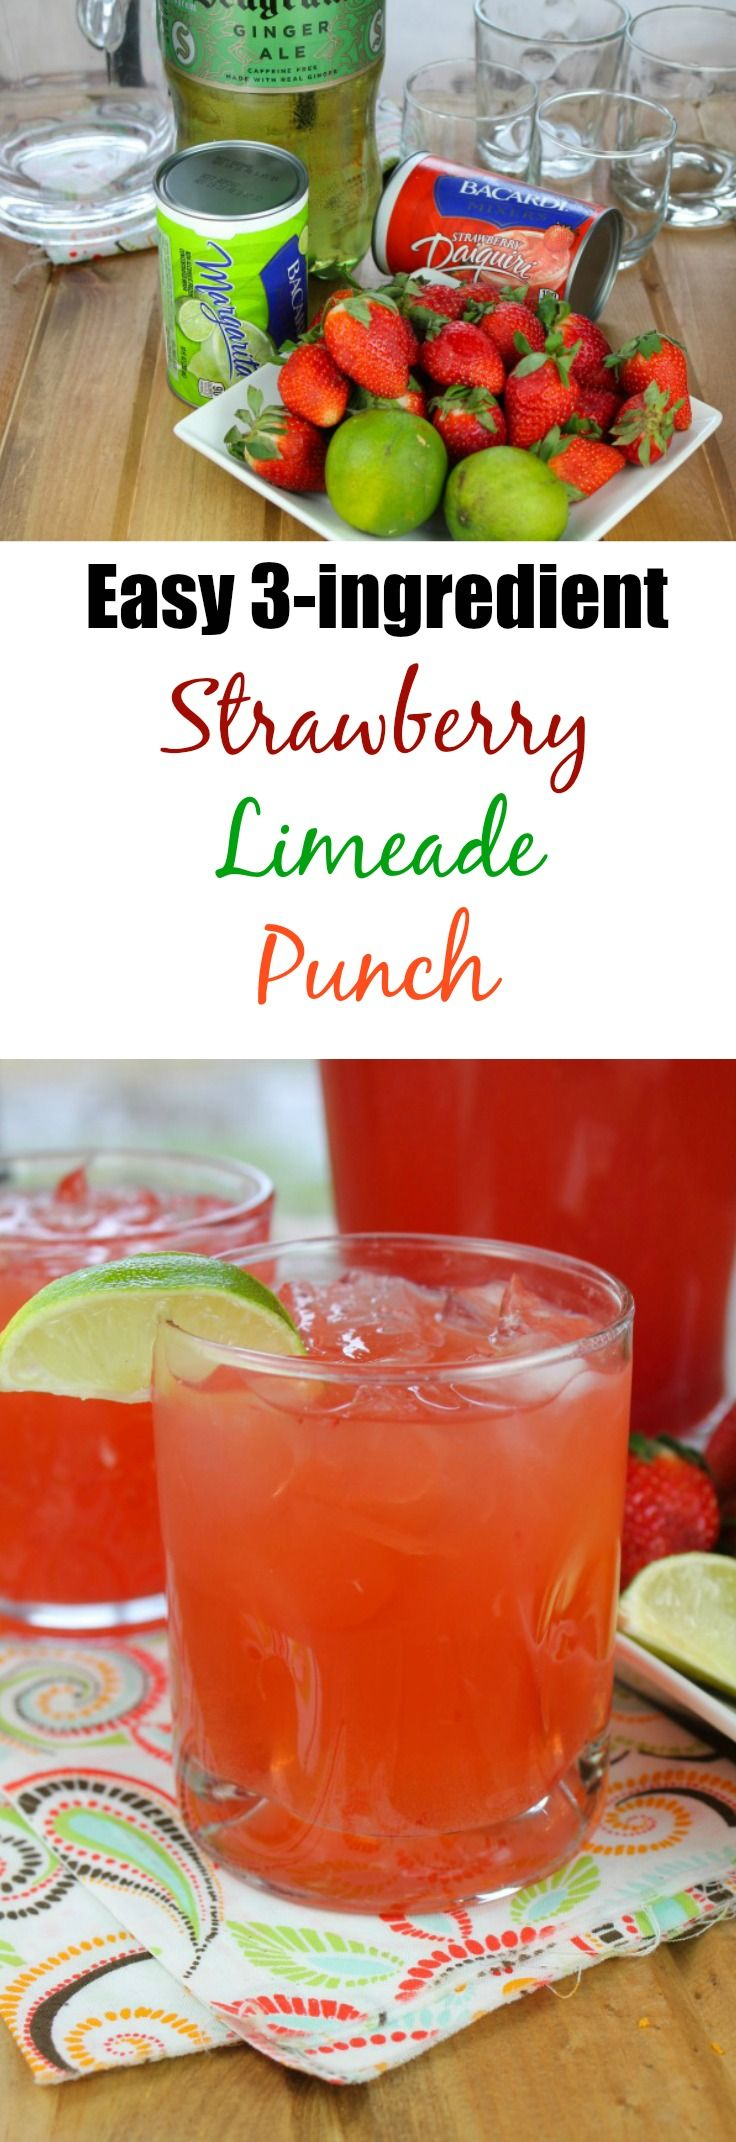 Easy 3- Ingredient Strawberry Limeade Punch Recipe